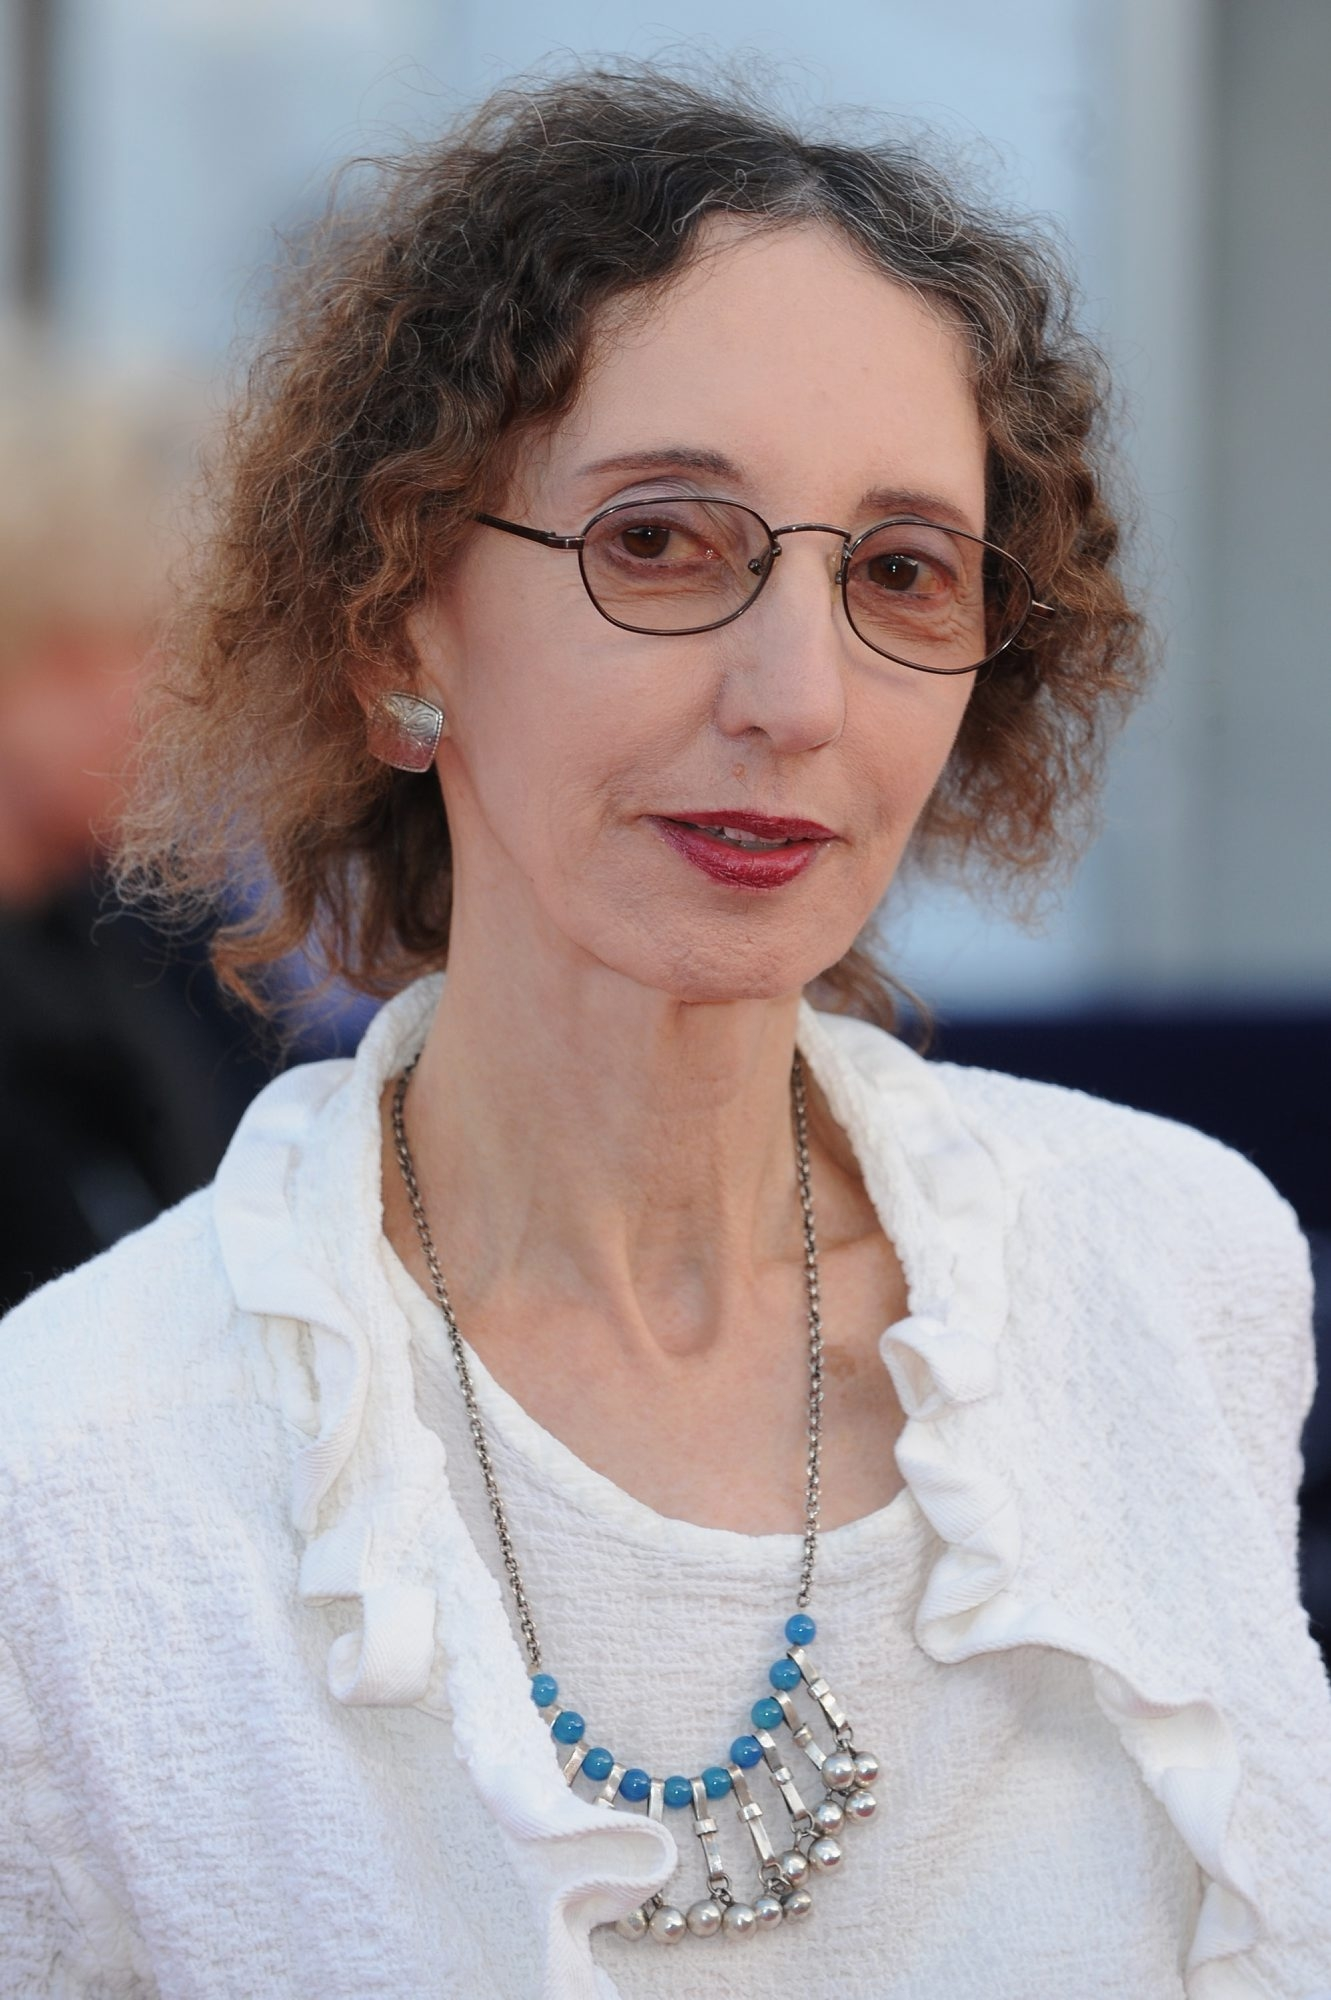 Joyce Carol Oates creates atmosphere with relentless detail.